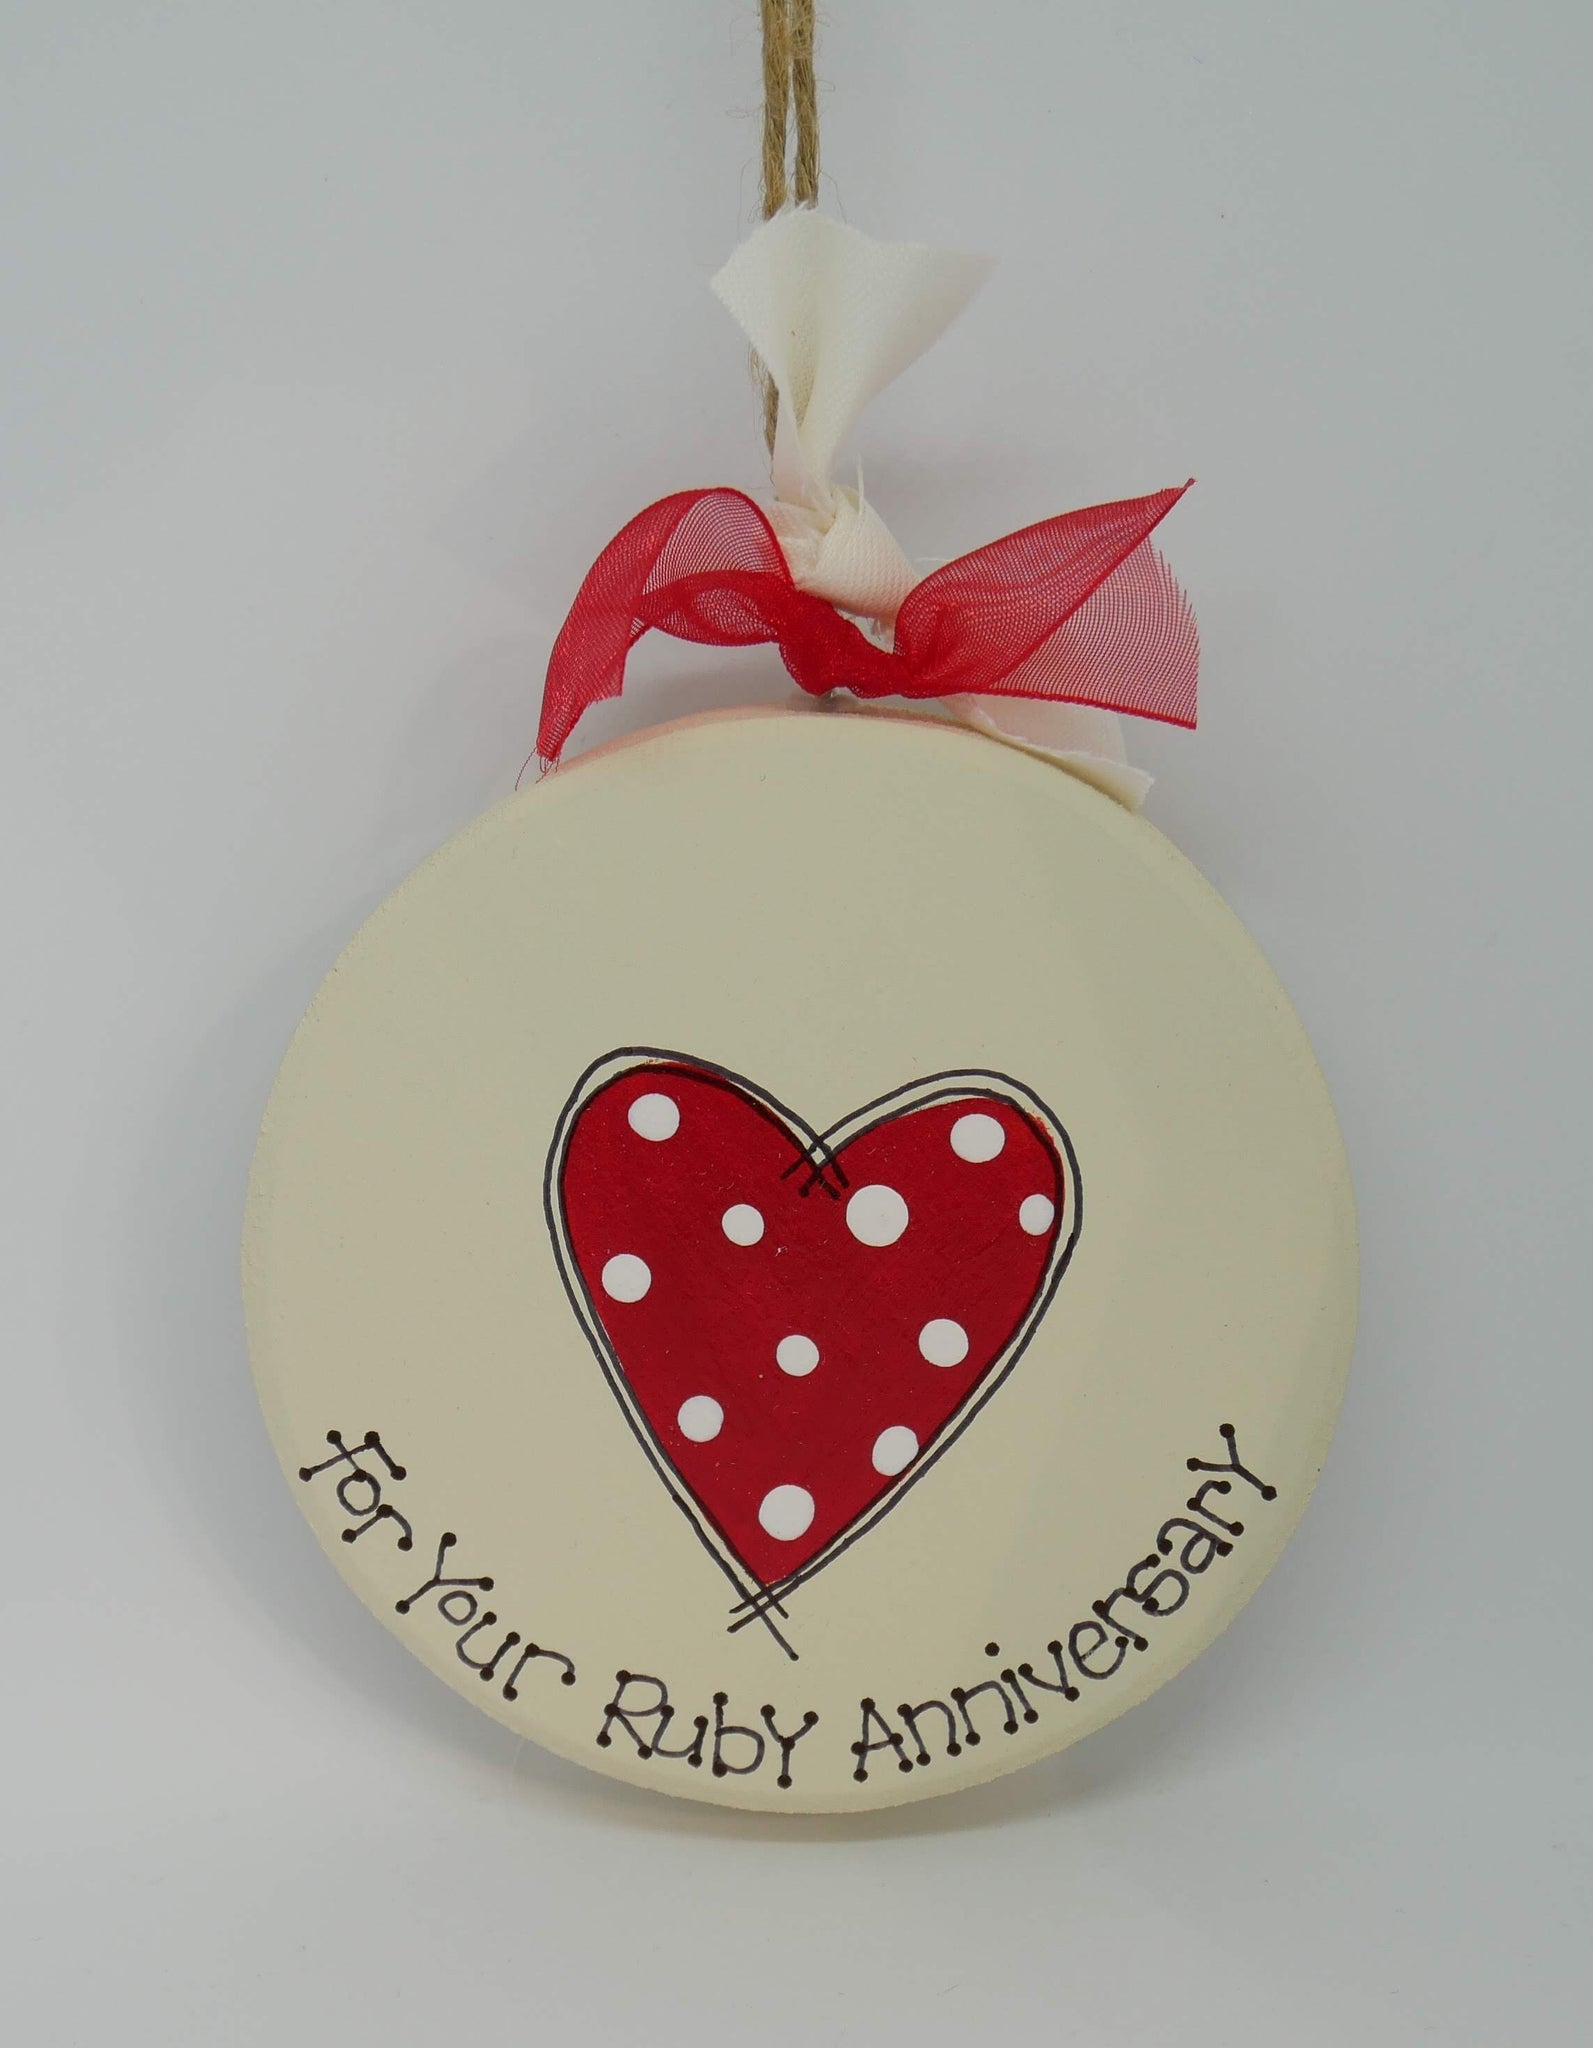 ruby anniversary keepsake plaque